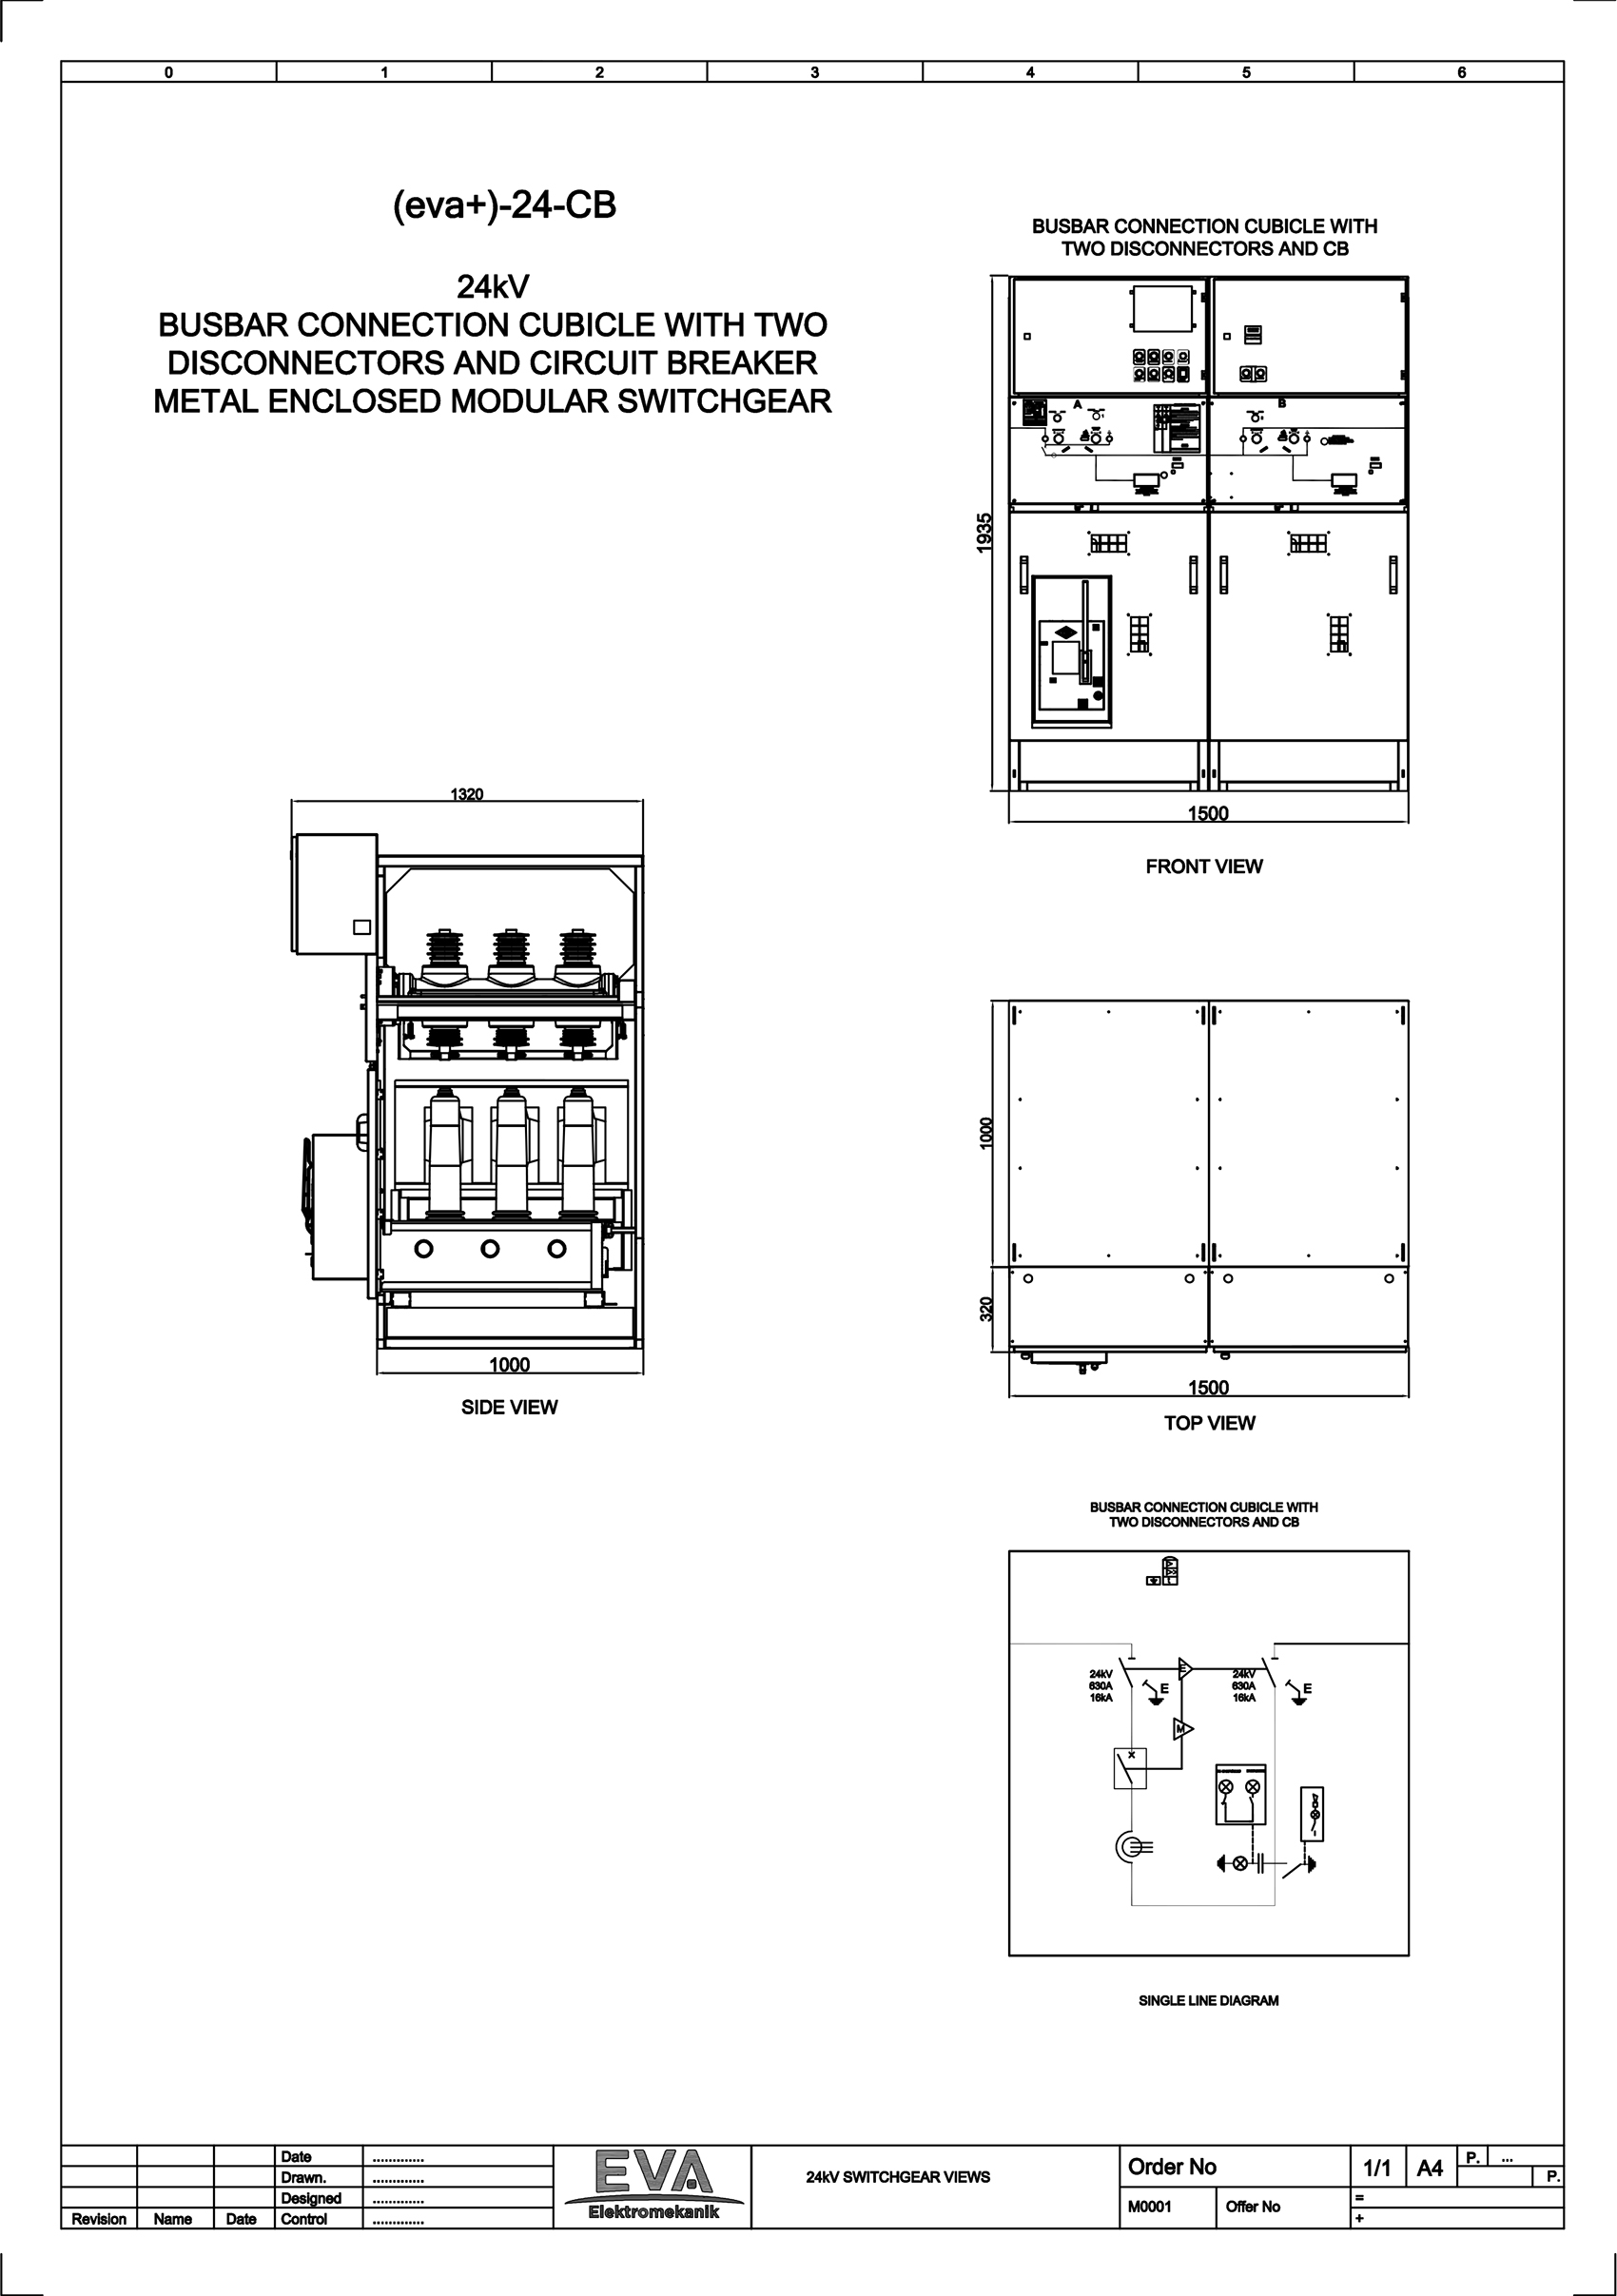 Busbar Connection Cubicle with Two Disconnectors and Circuit Breaker (CB)